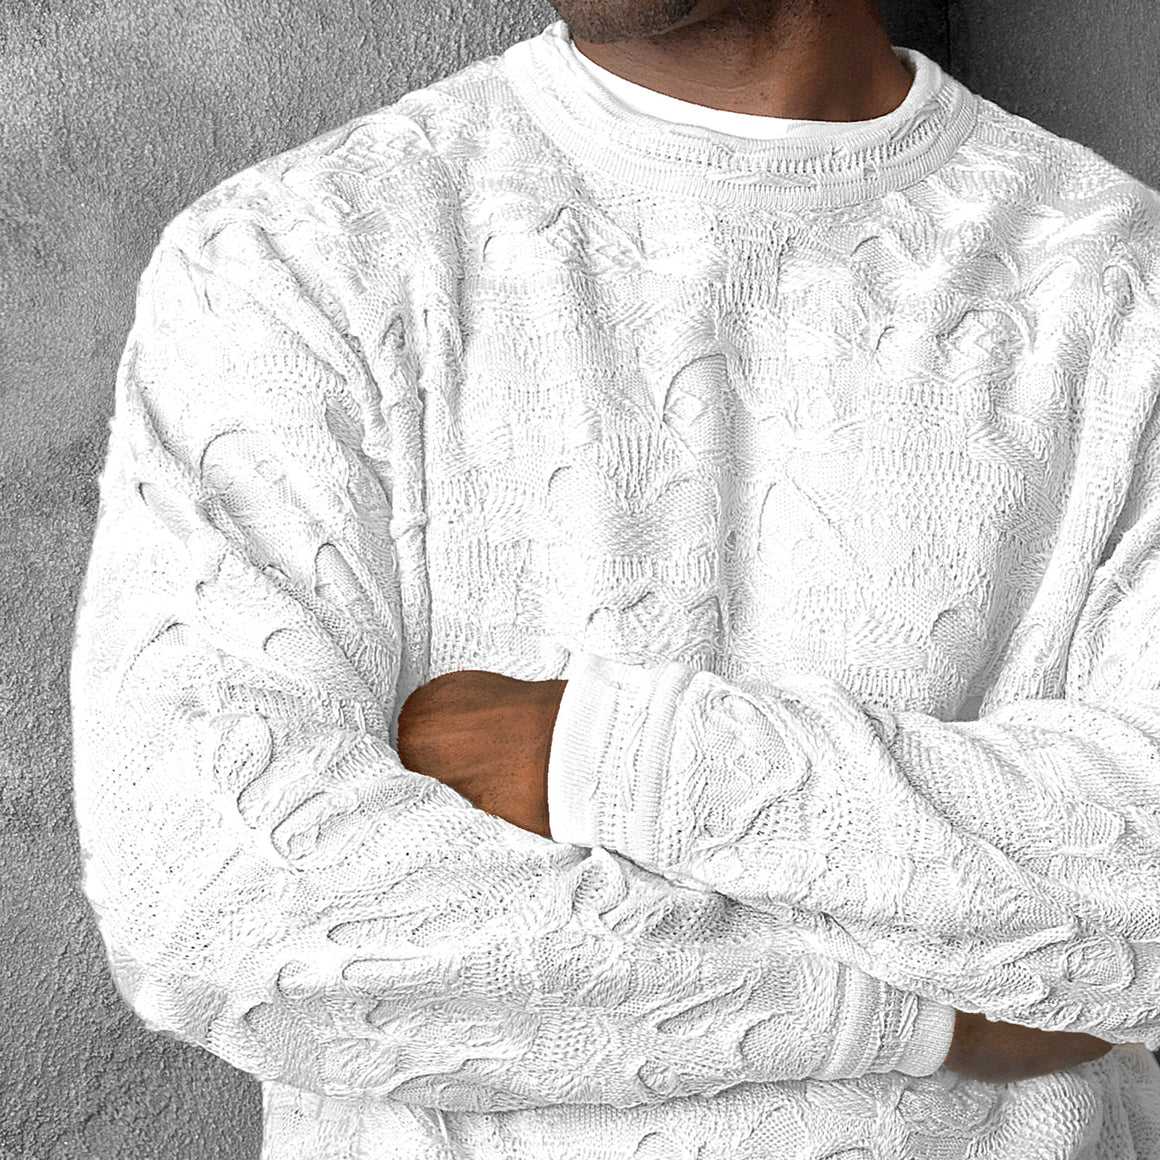 NEW - COOGI WHITEOUT CREWNECK, SPECIAL EDITION